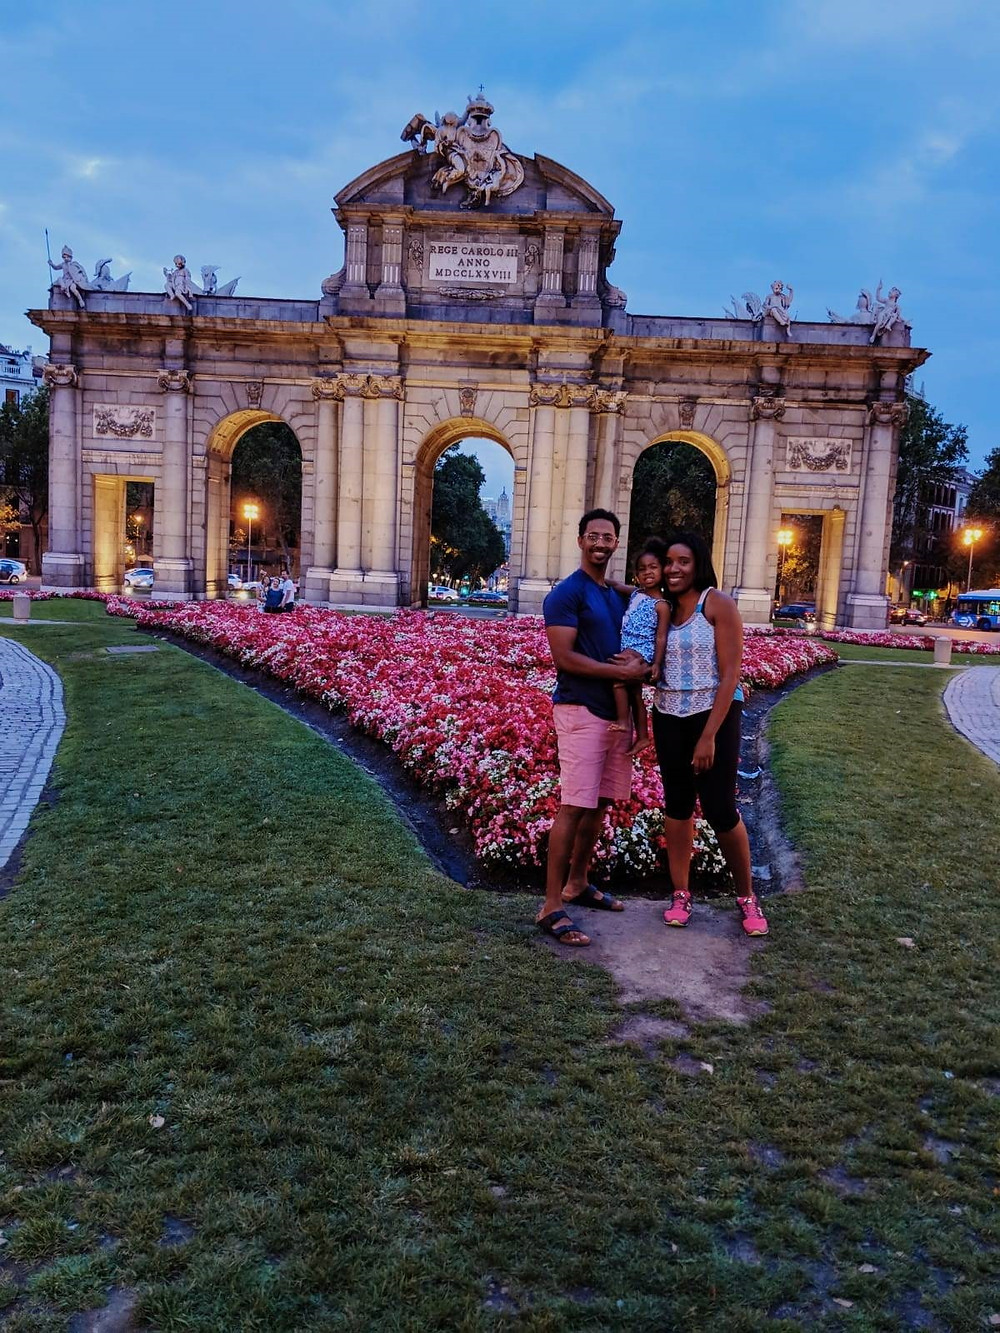 Ms. Staley-Ngomo in Madrid with her partner and daughter